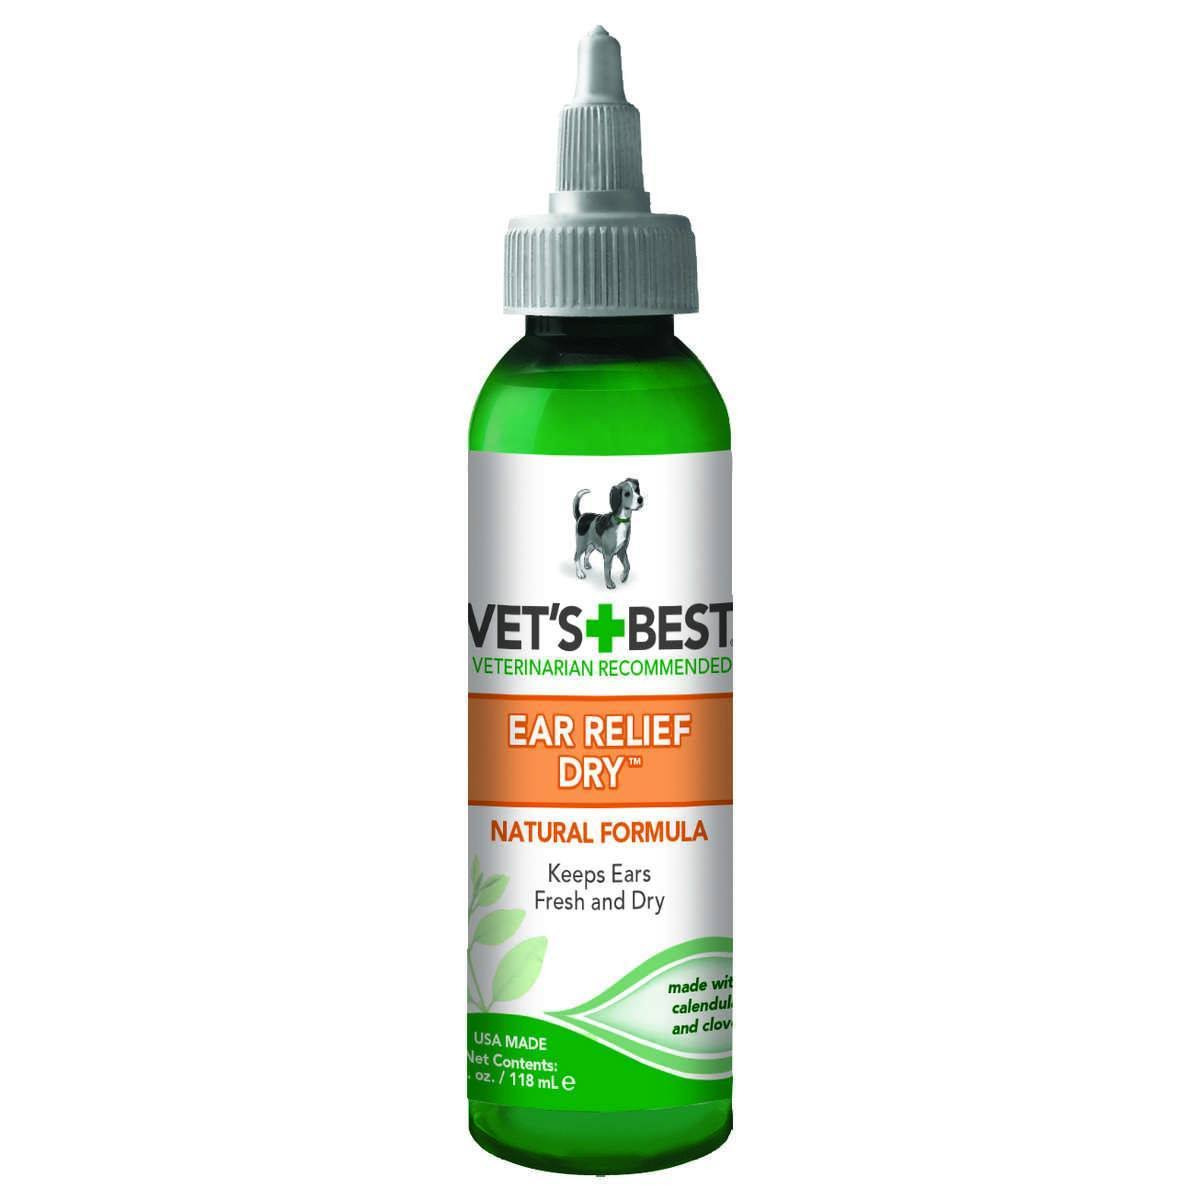 Vet's Best Dog Dry Ear Relief - Green, 4oz